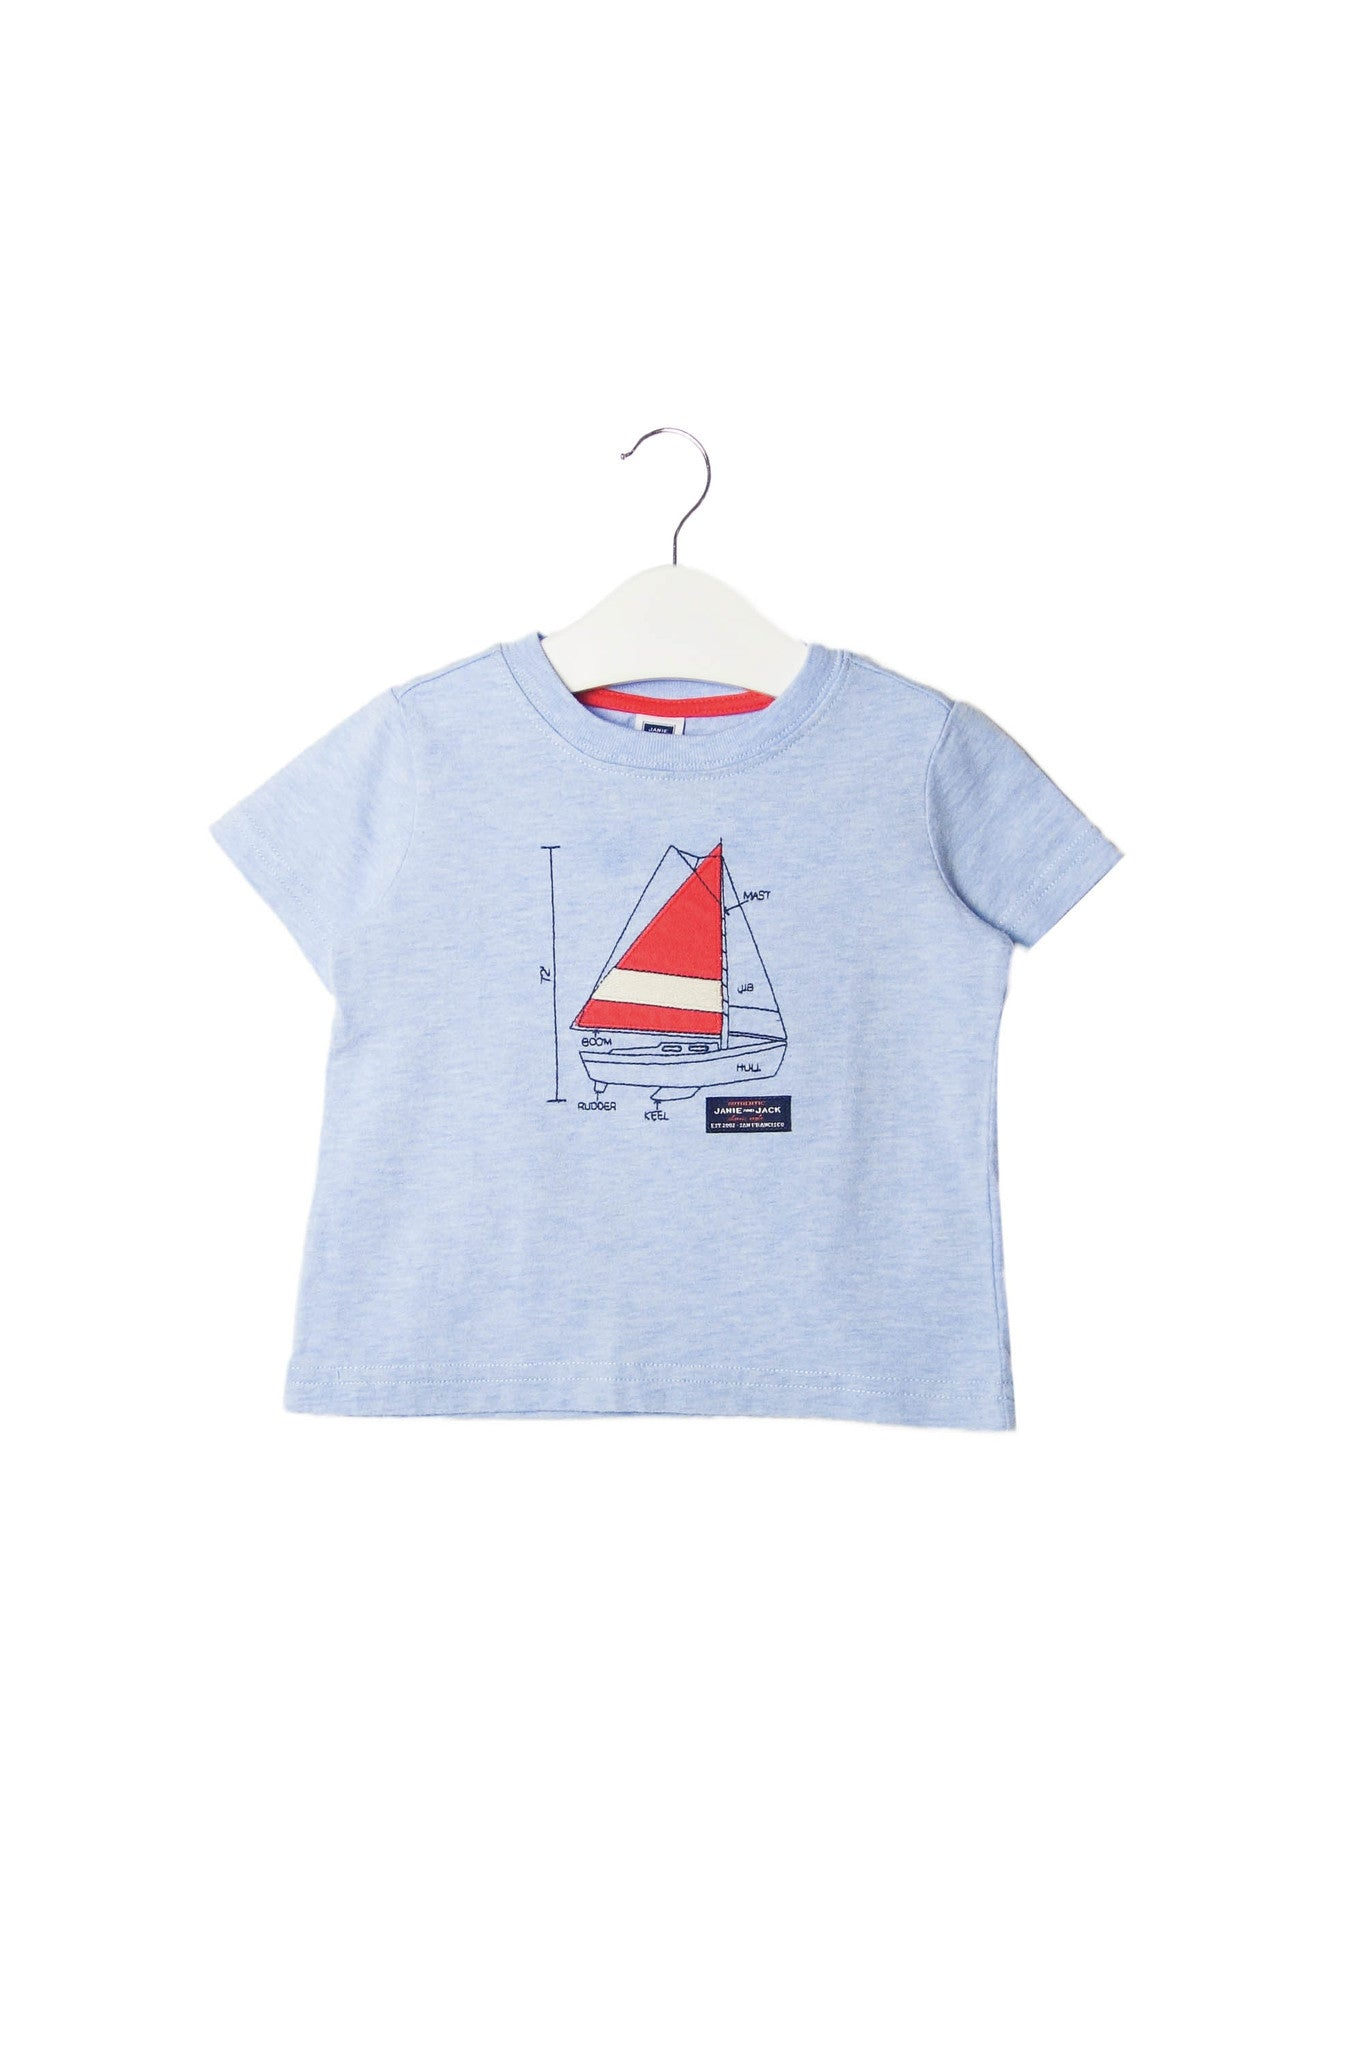 10003346 Janie & Jack Baby~T-Shirt 6-12M at Retykle